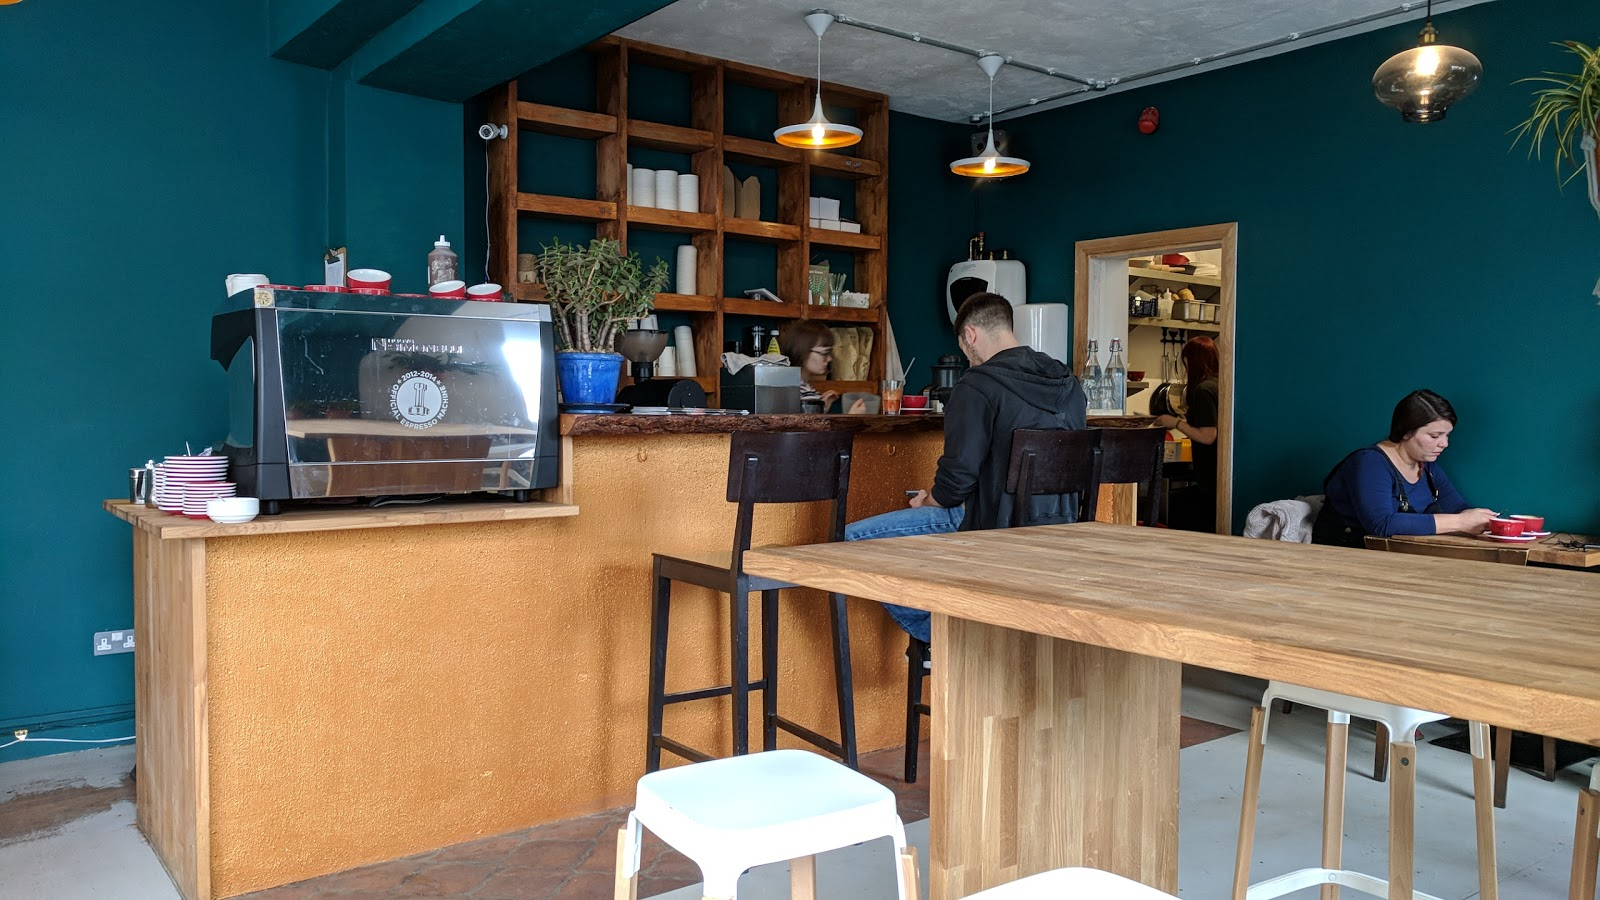 Ground Coffee House - Kemptown: A Work-Friendly Place in Brighton